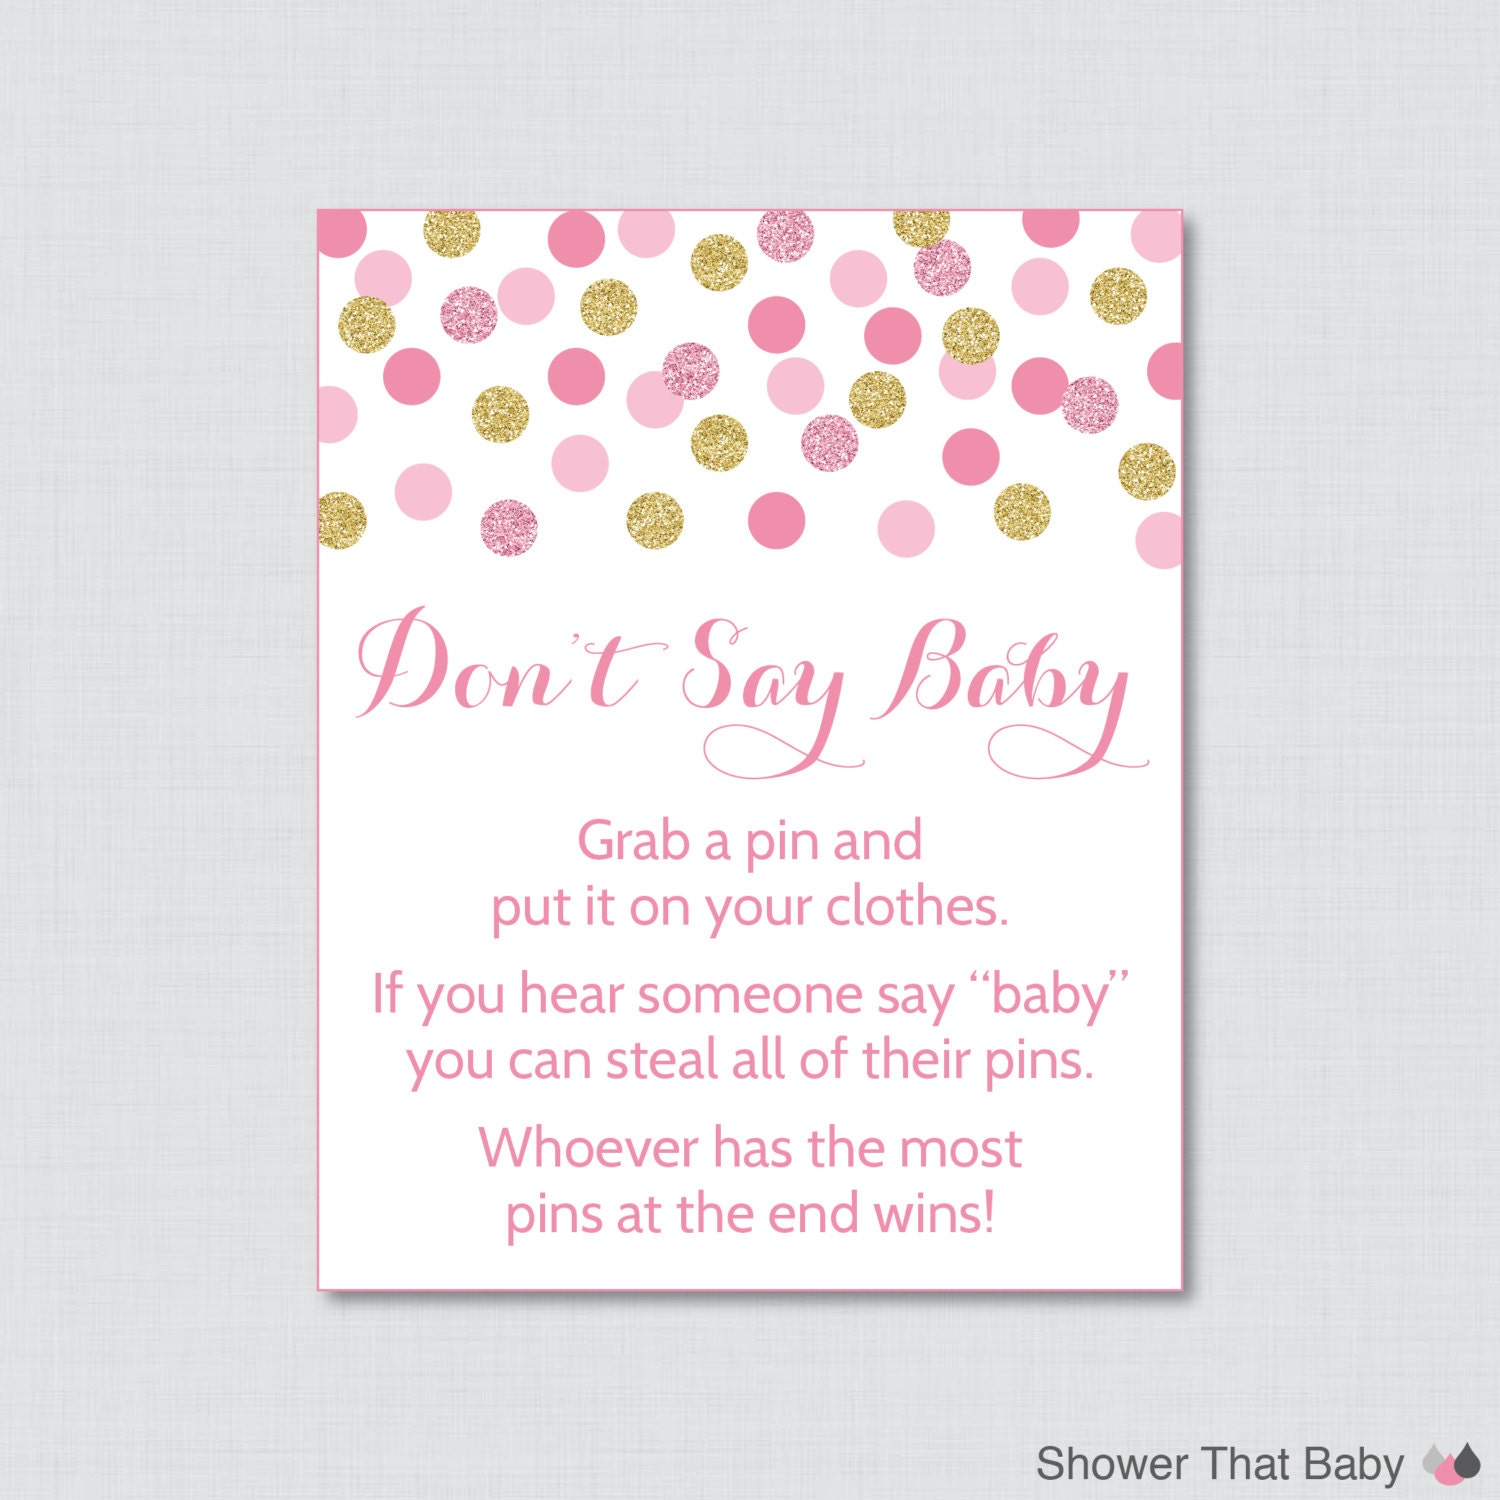 image about Don't Say Baby Printable identified as Dont Say Little one Child Shower Match Printable Purple and Gold Dont Say Little one Indication Diaper Pin Clothing Pin Sport - Prompt Down load - 0008-p